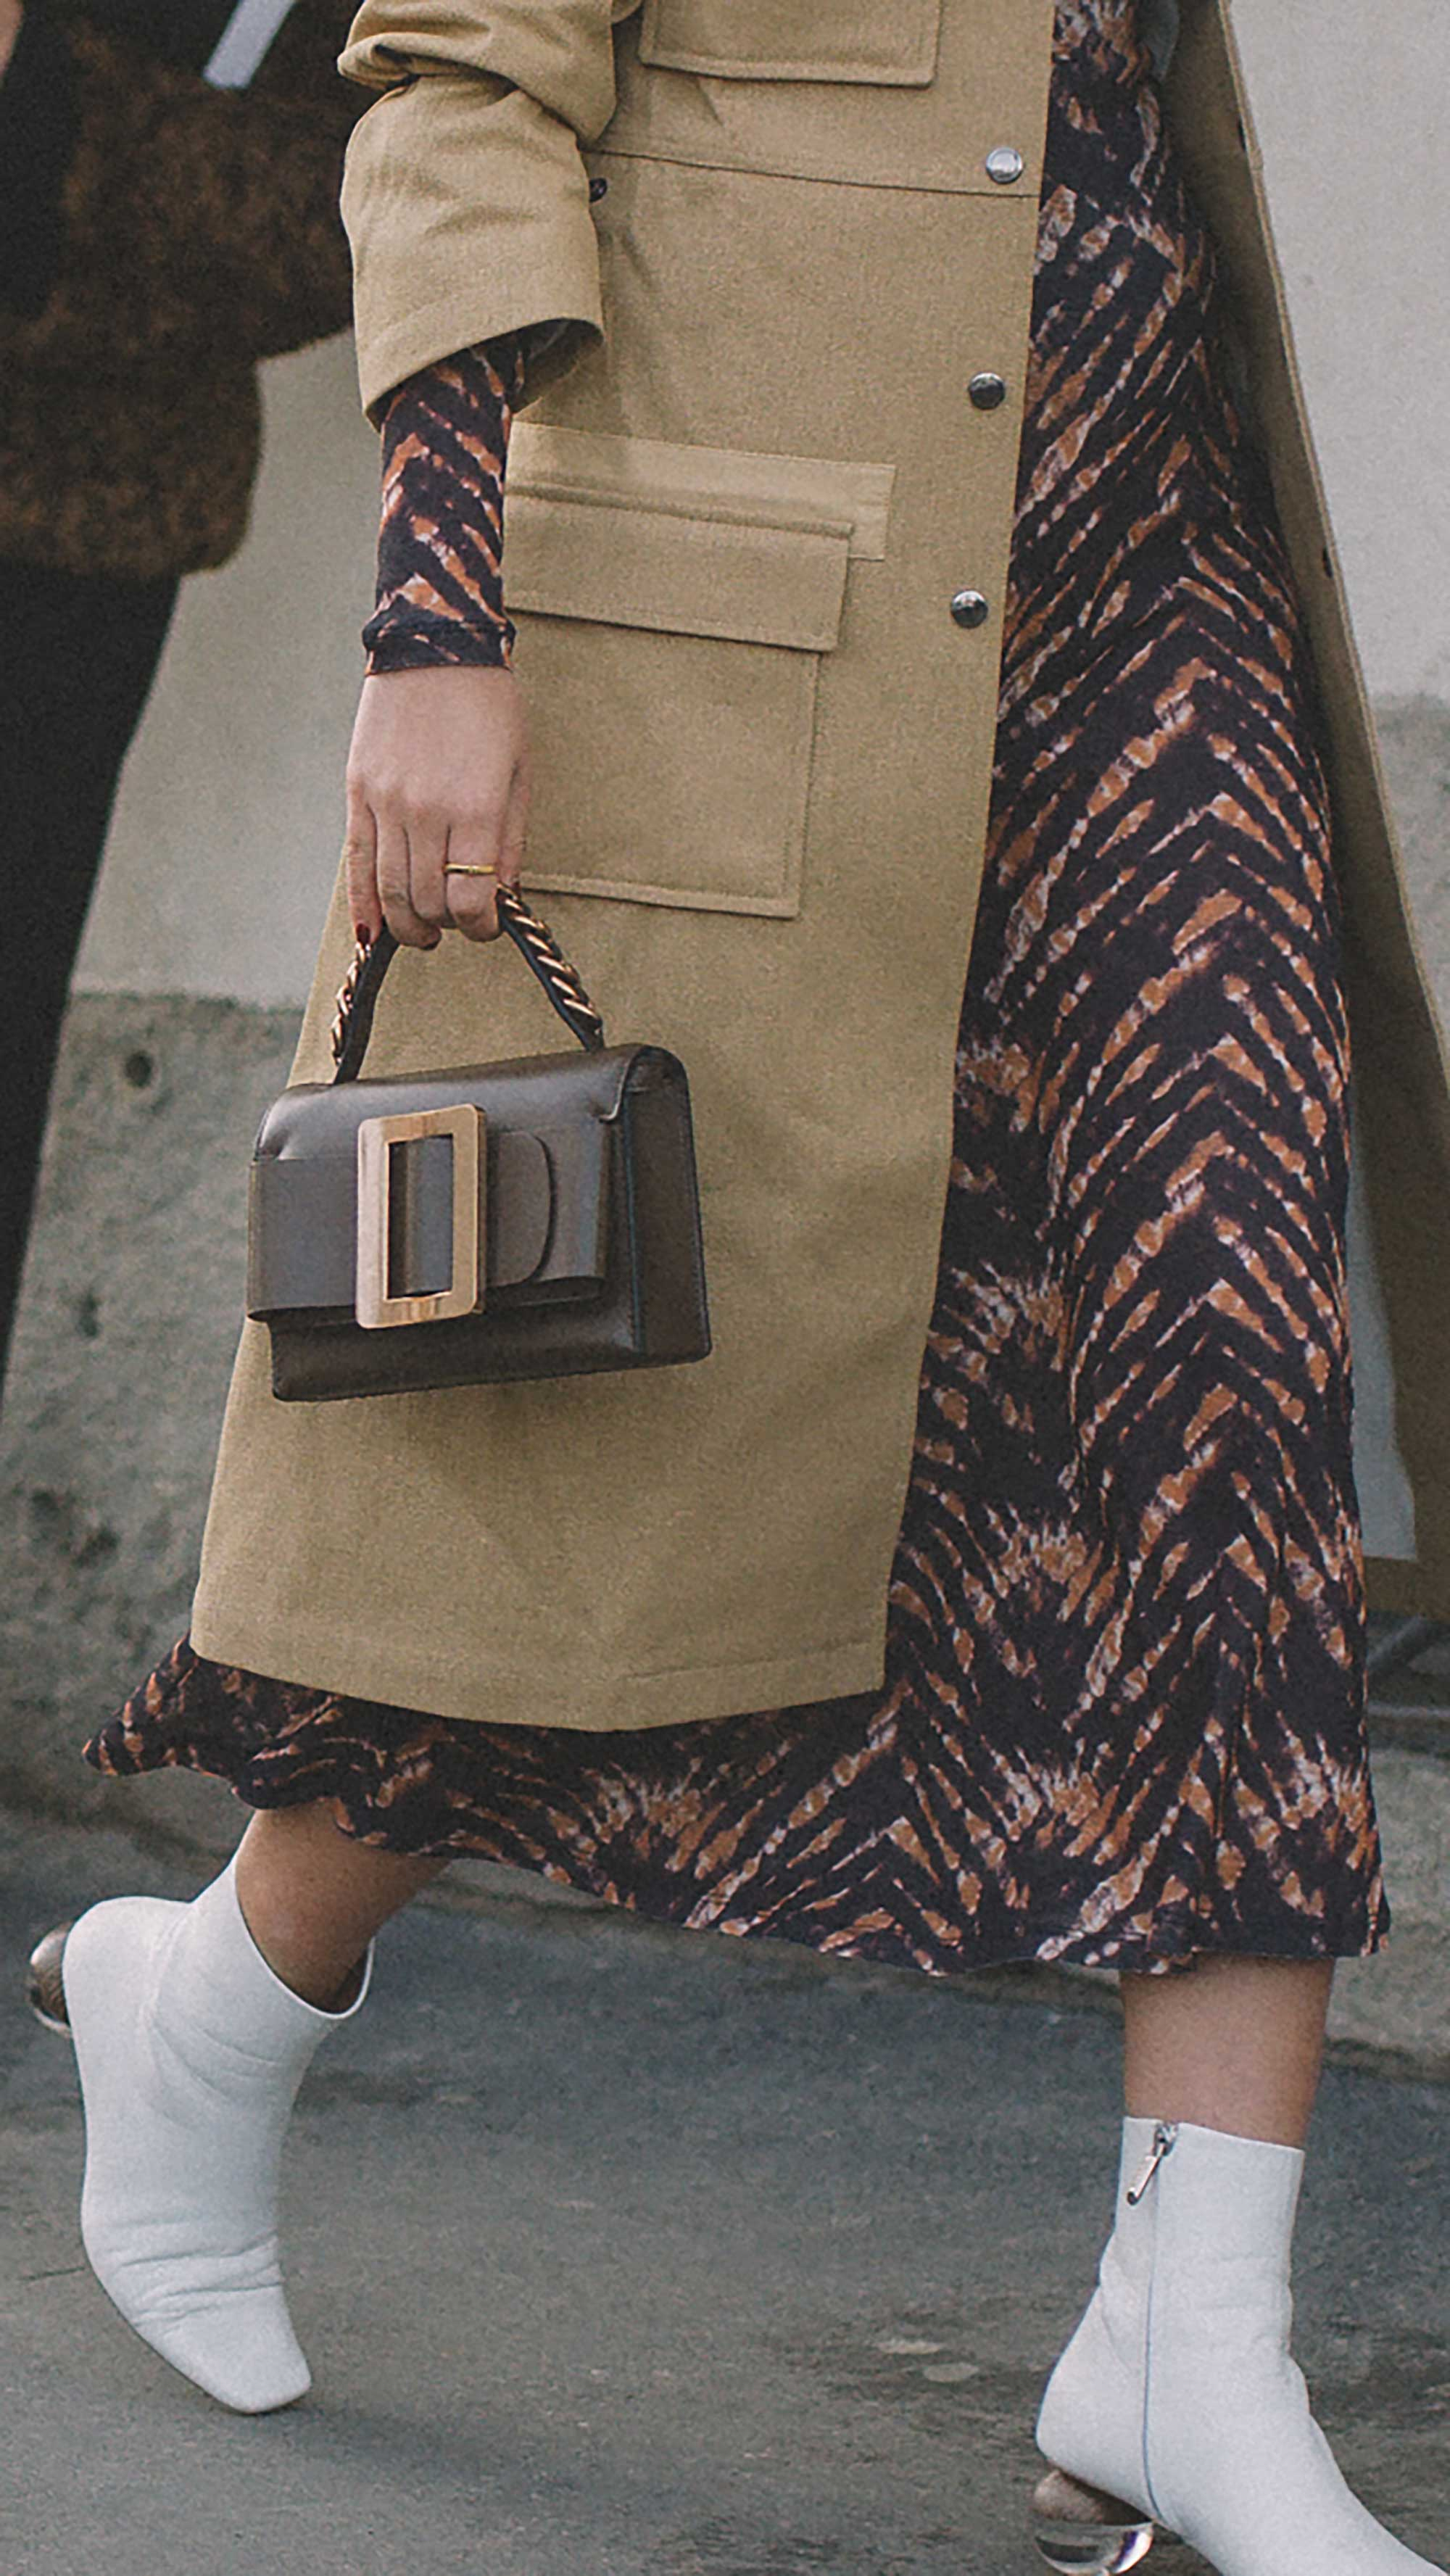 est outfits of Milan Fashion Week street style day two MFW FW19 12.jpg